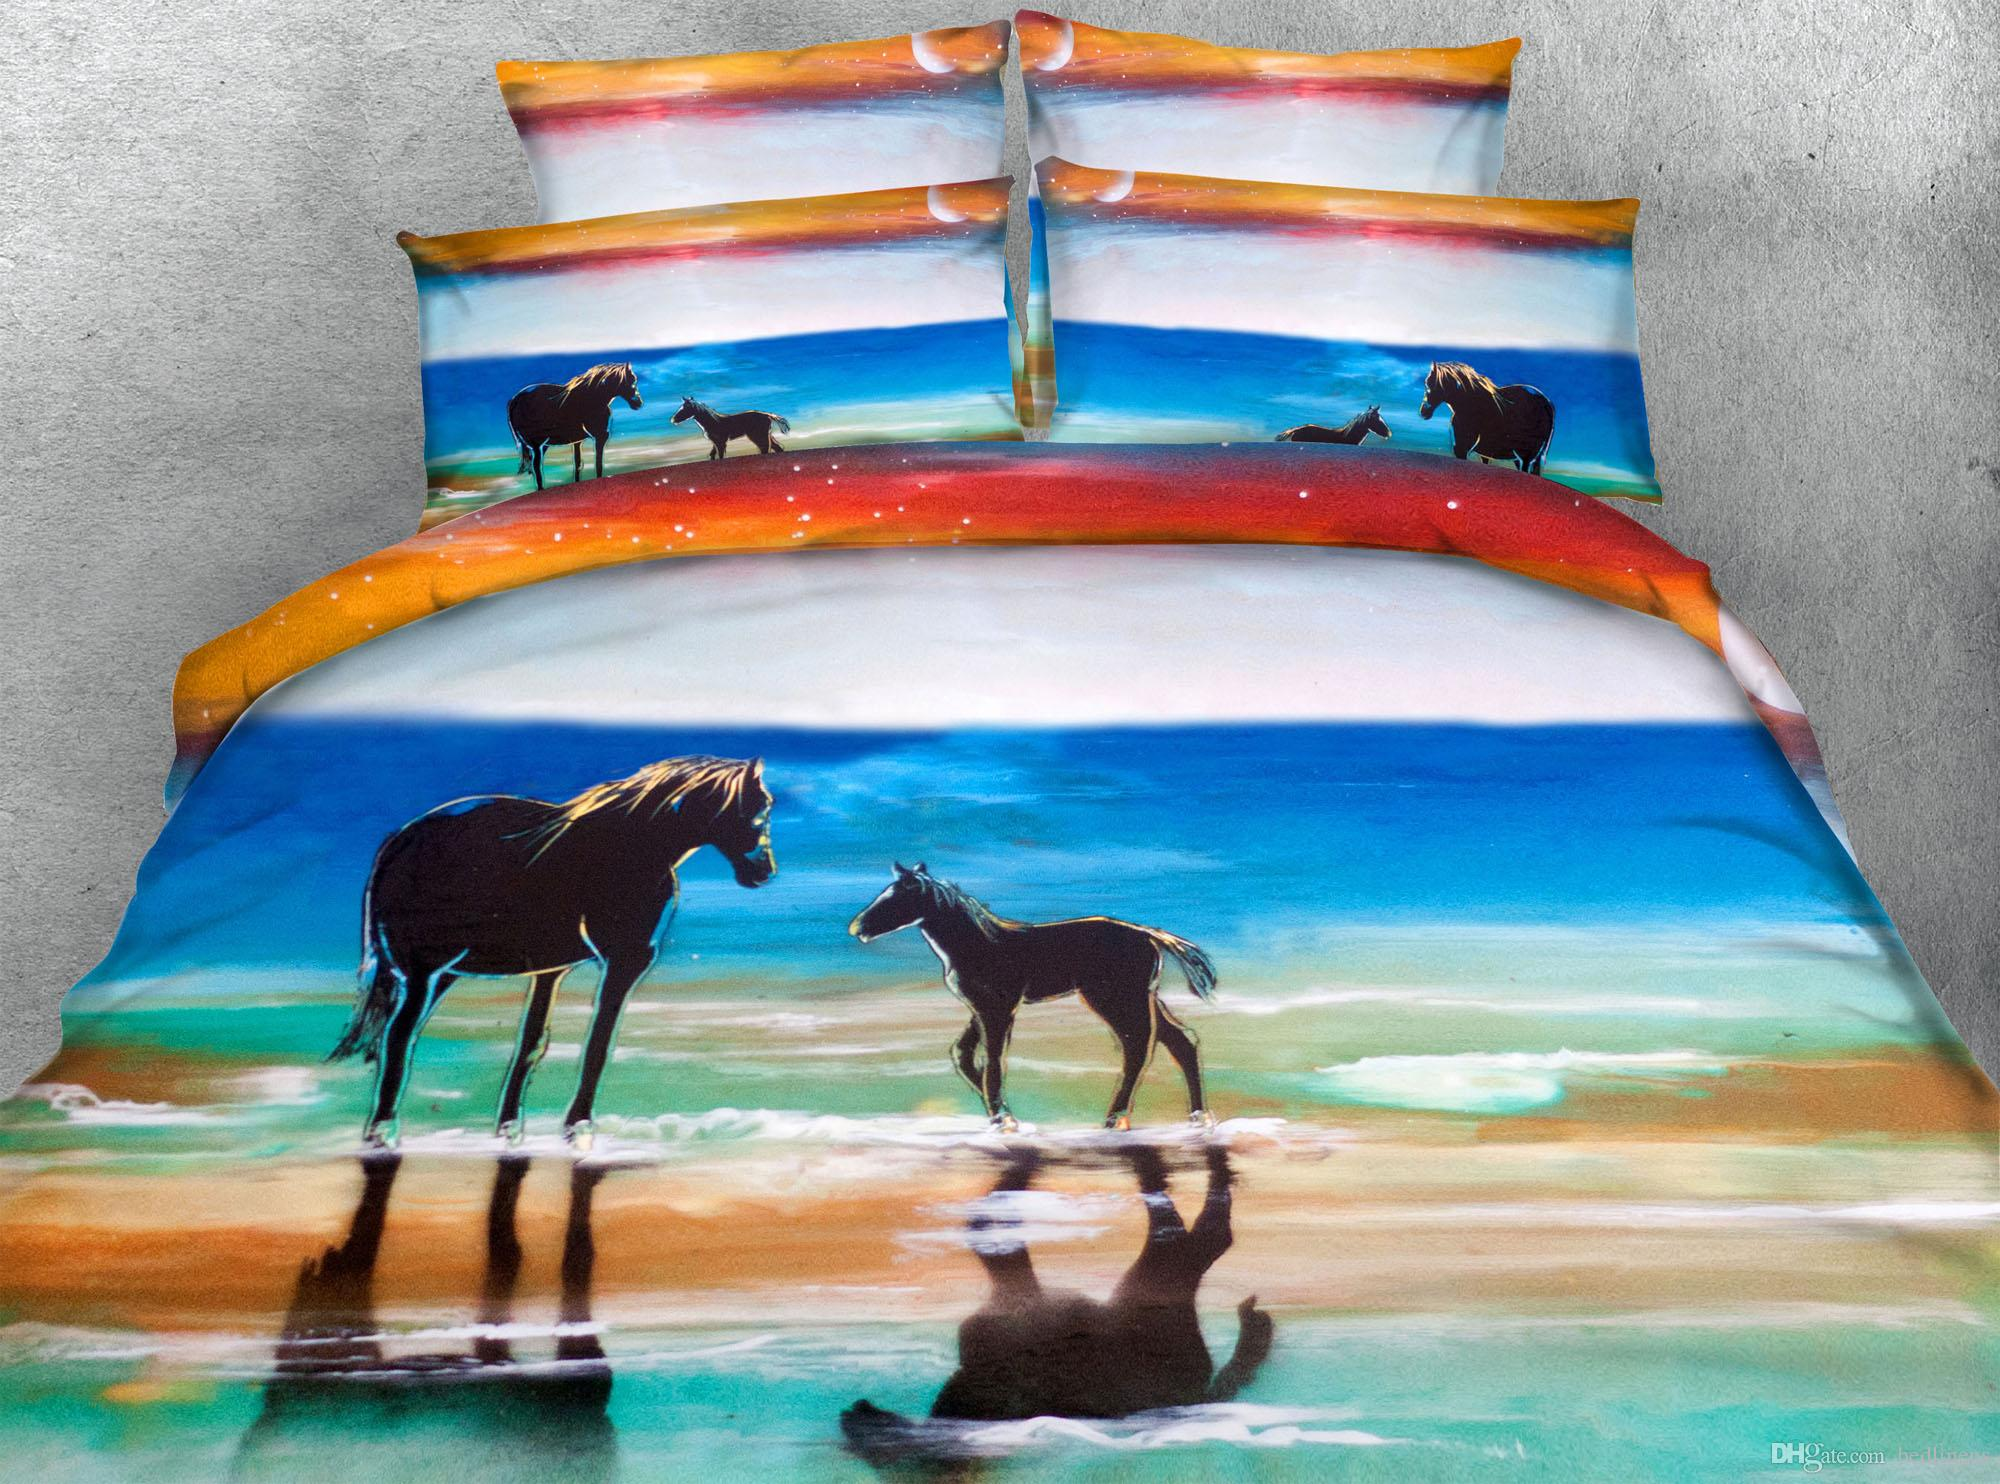 3d Ocean Horse Bedding Sets Beautiful Scenery Dovet Cover Set Twin Full Queen King Cal King Size Bedspreads Comforter Set Cheap White Duvet Cover Luxury Comforter Set From Bedlinens 129 45 Dhgate Com